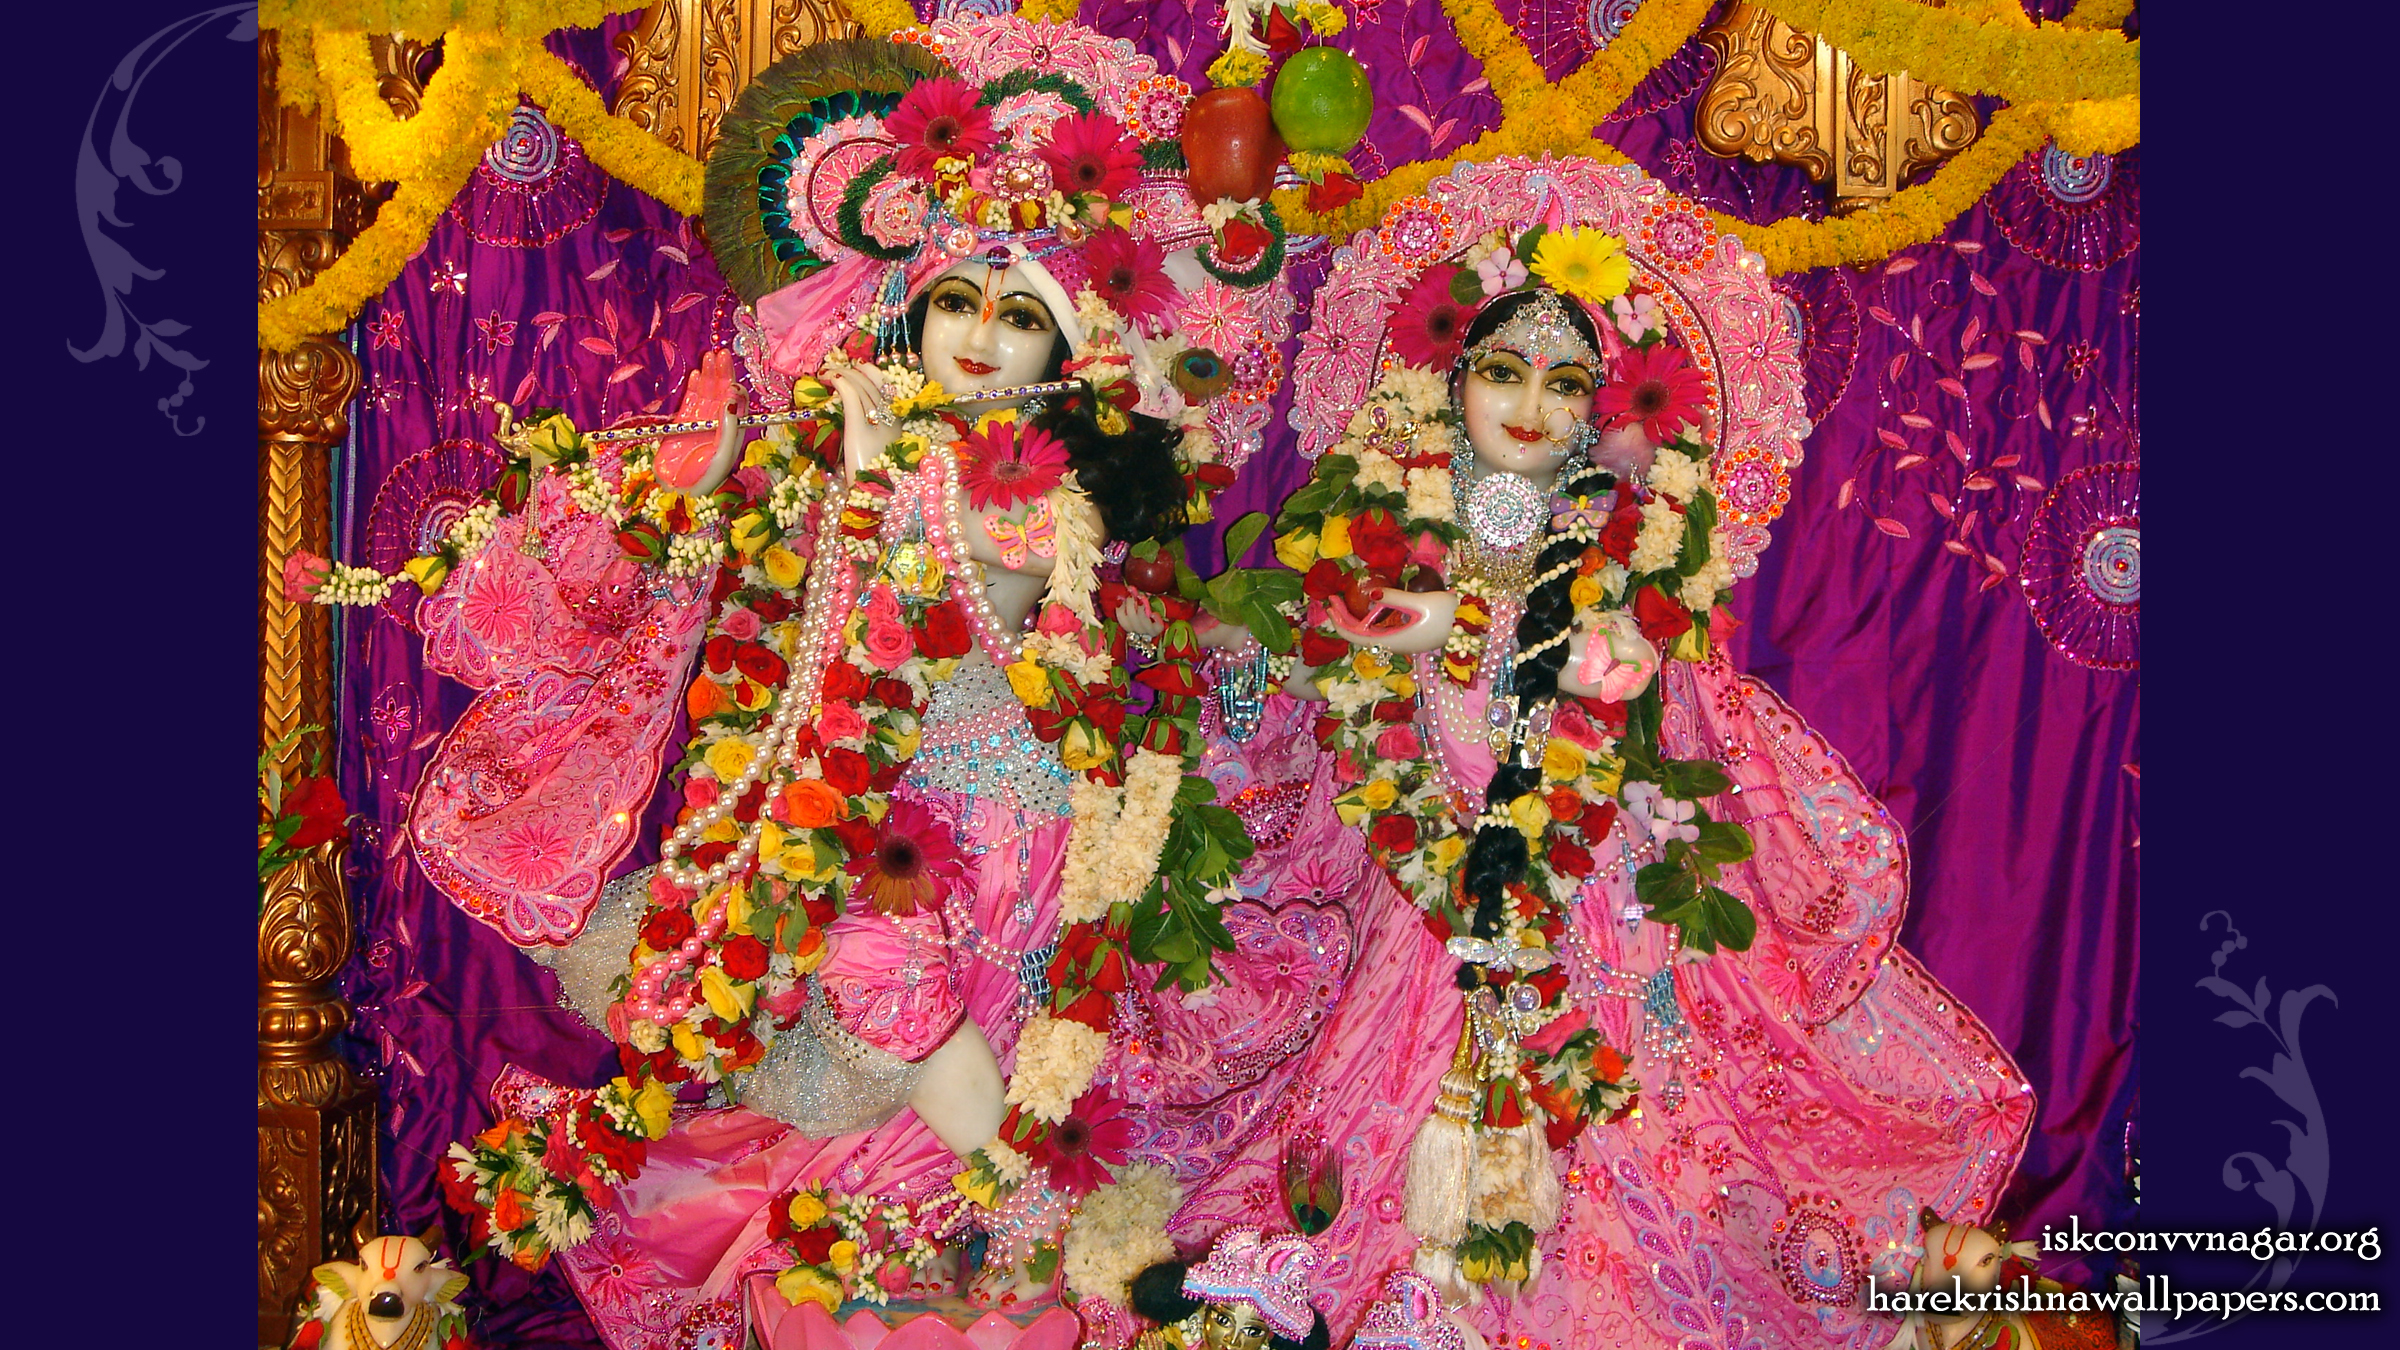 Sri Sri Radha Giridhari Wallpaper (002) Size 2400x1350 Download